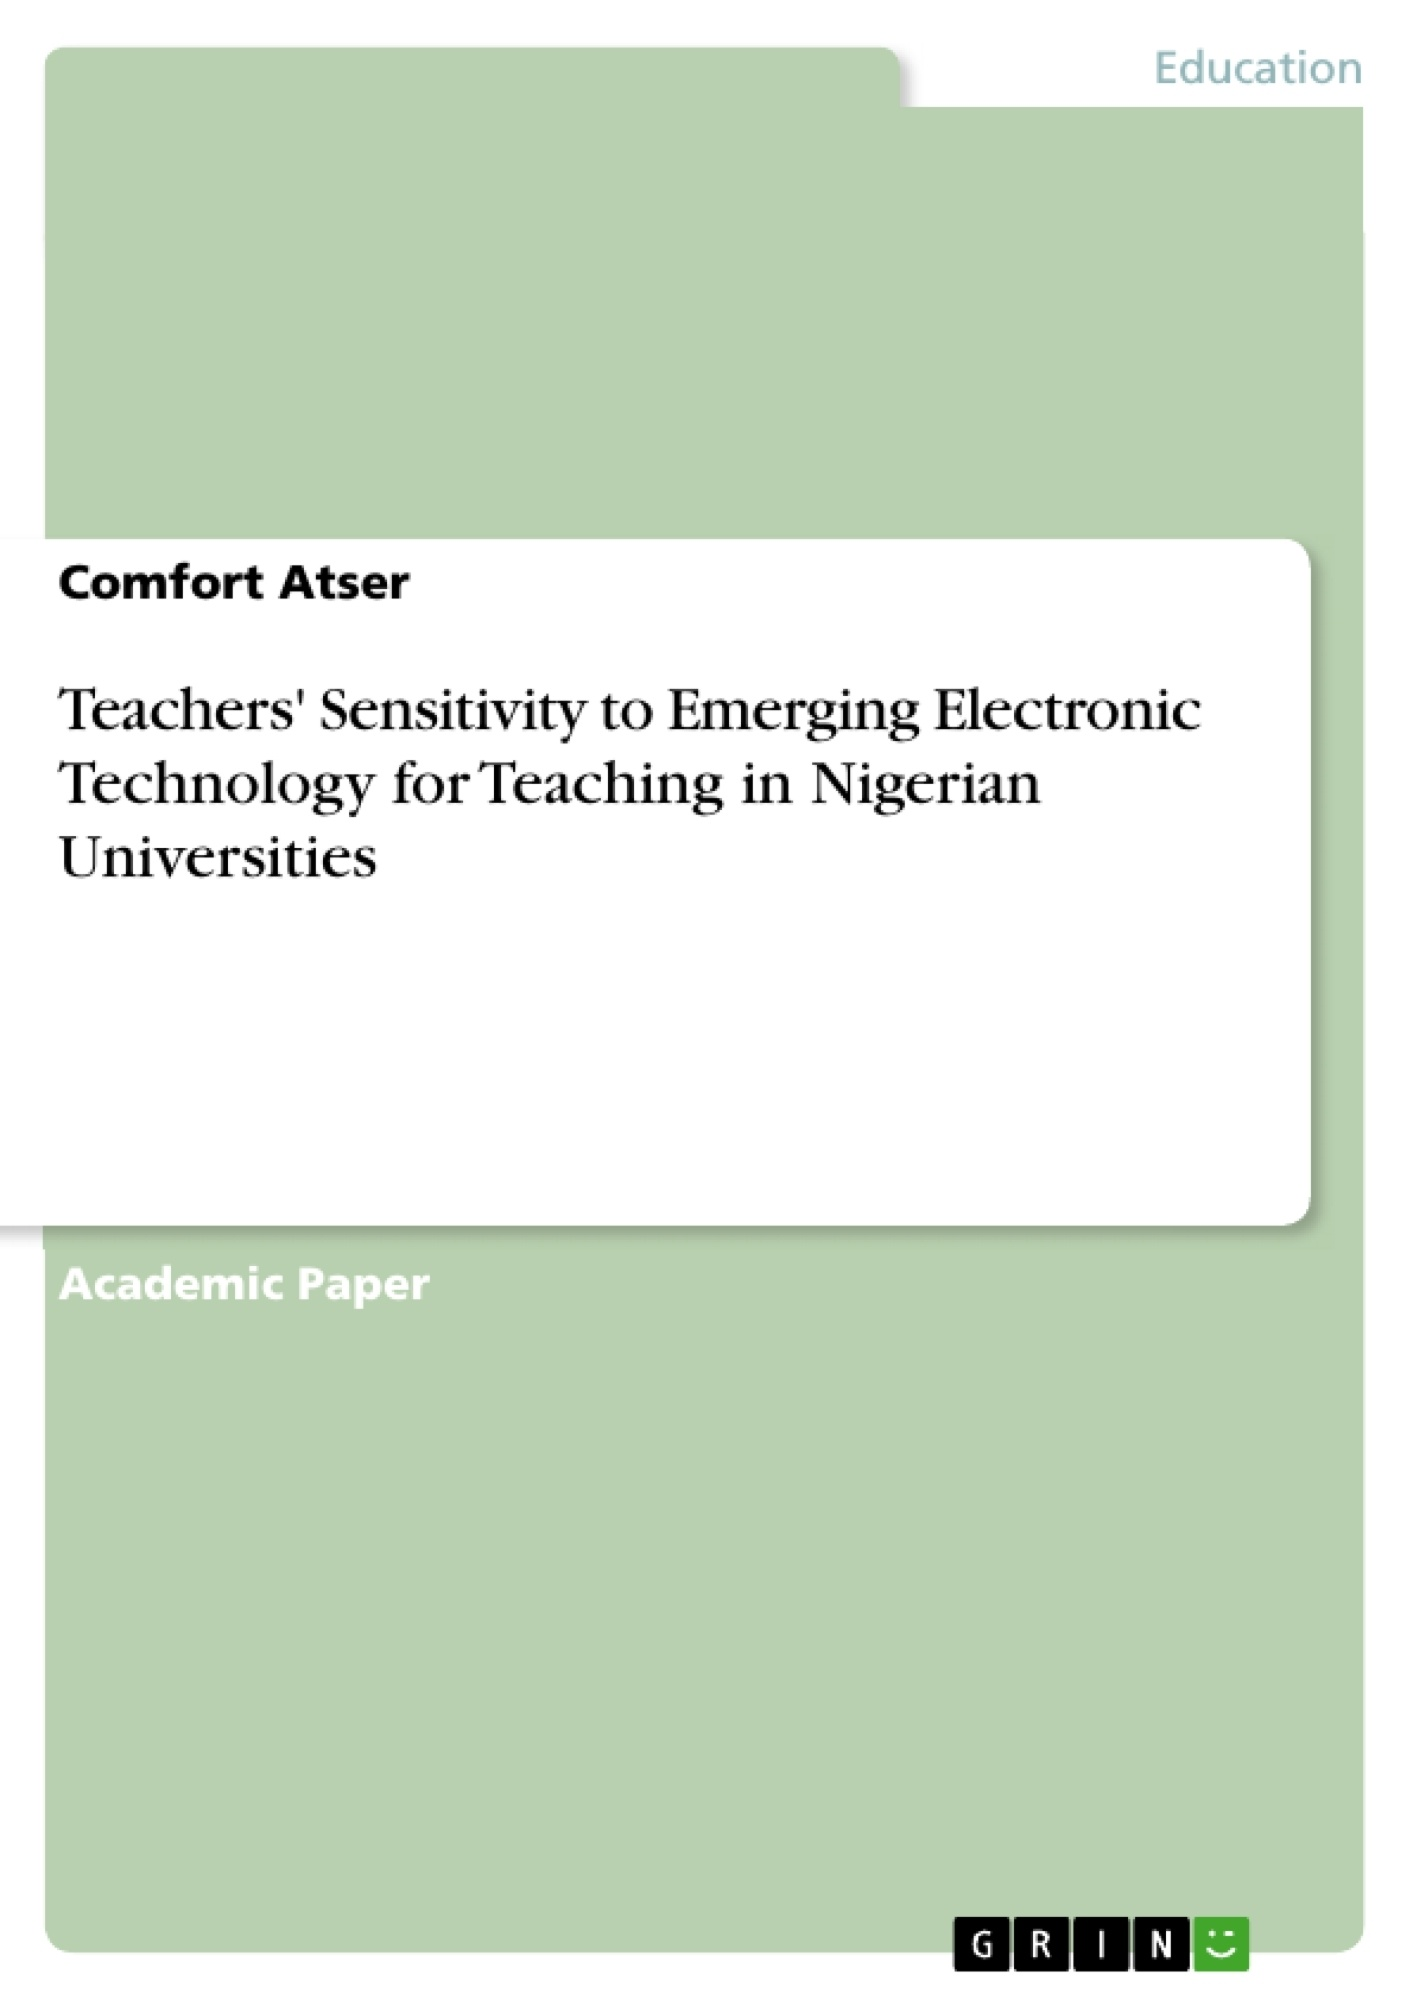 Title: Teachers' Sensitivity to Emerging Electronic Technology for Teaching in Nigerian Universities